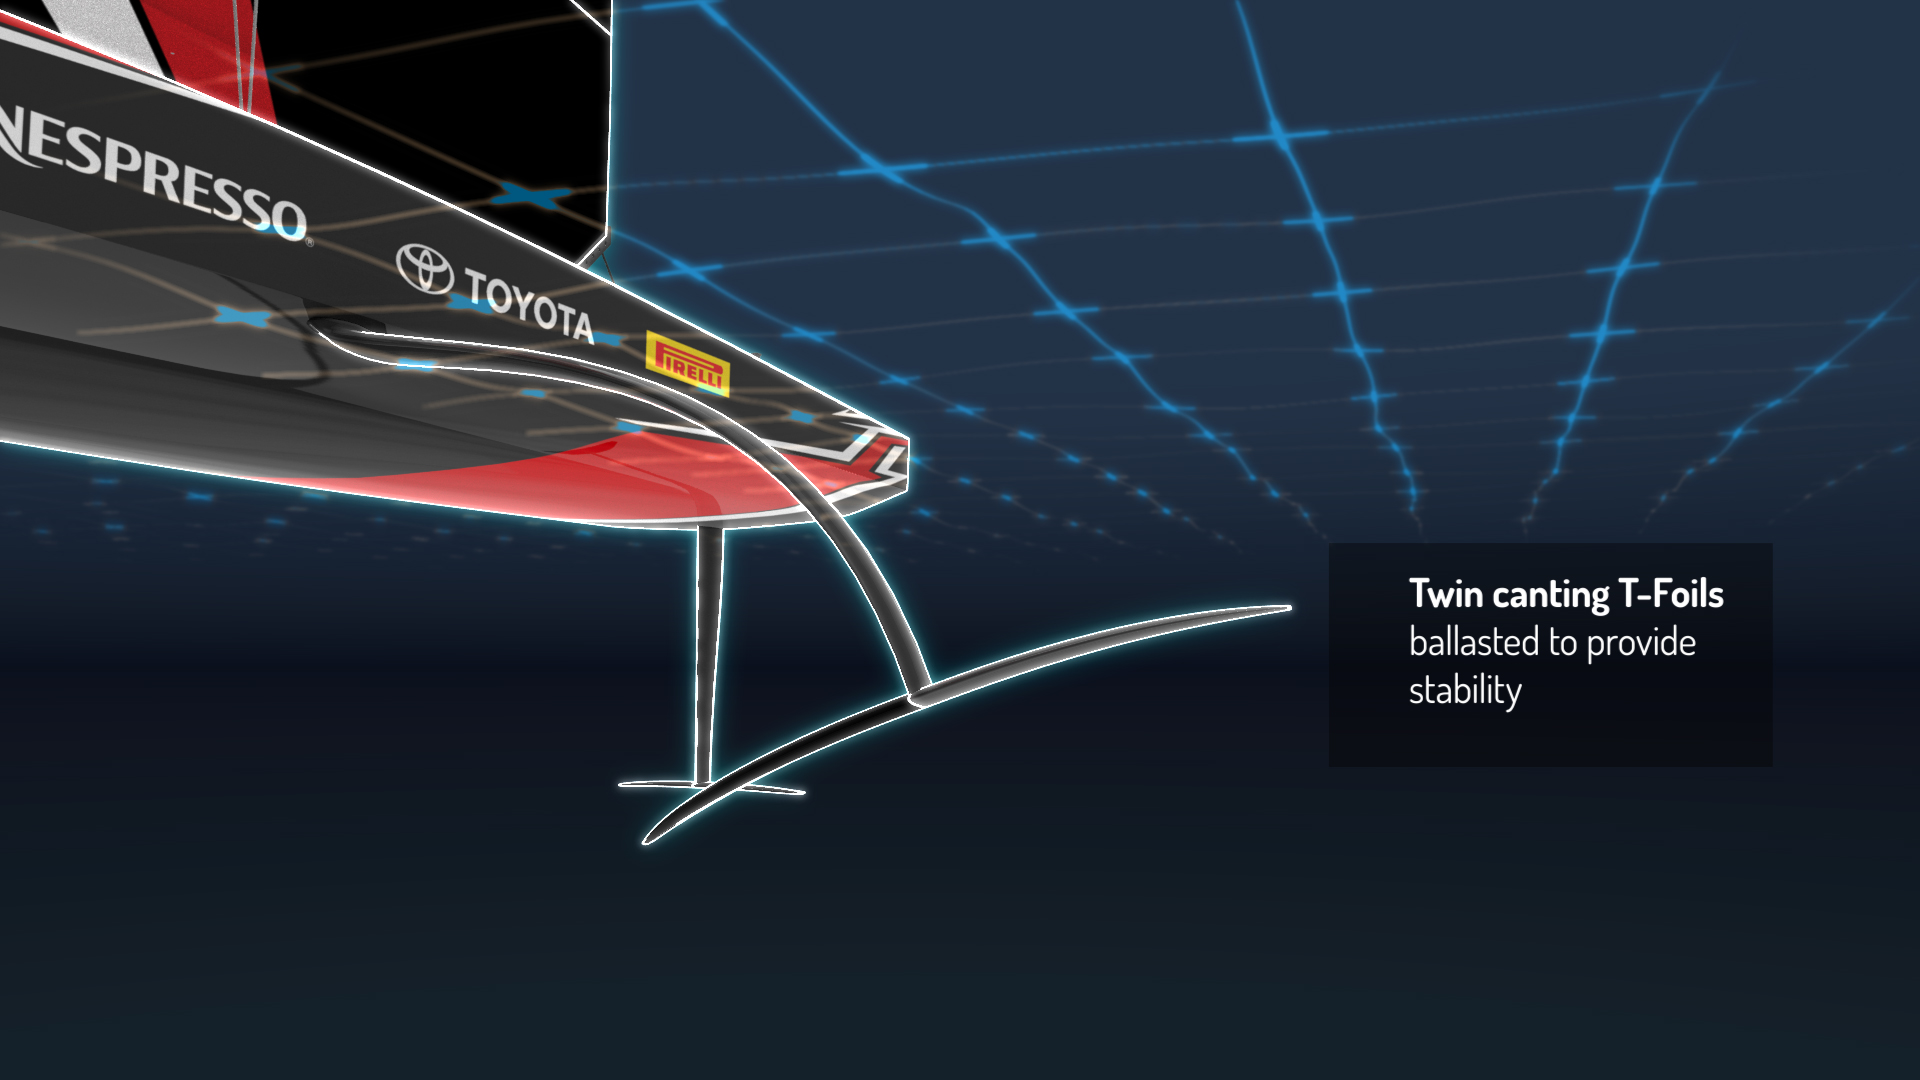 The concept for the AC75, the class of boat to be sailed in the 36th America's Cup 2021 in Auckland / New Zealand